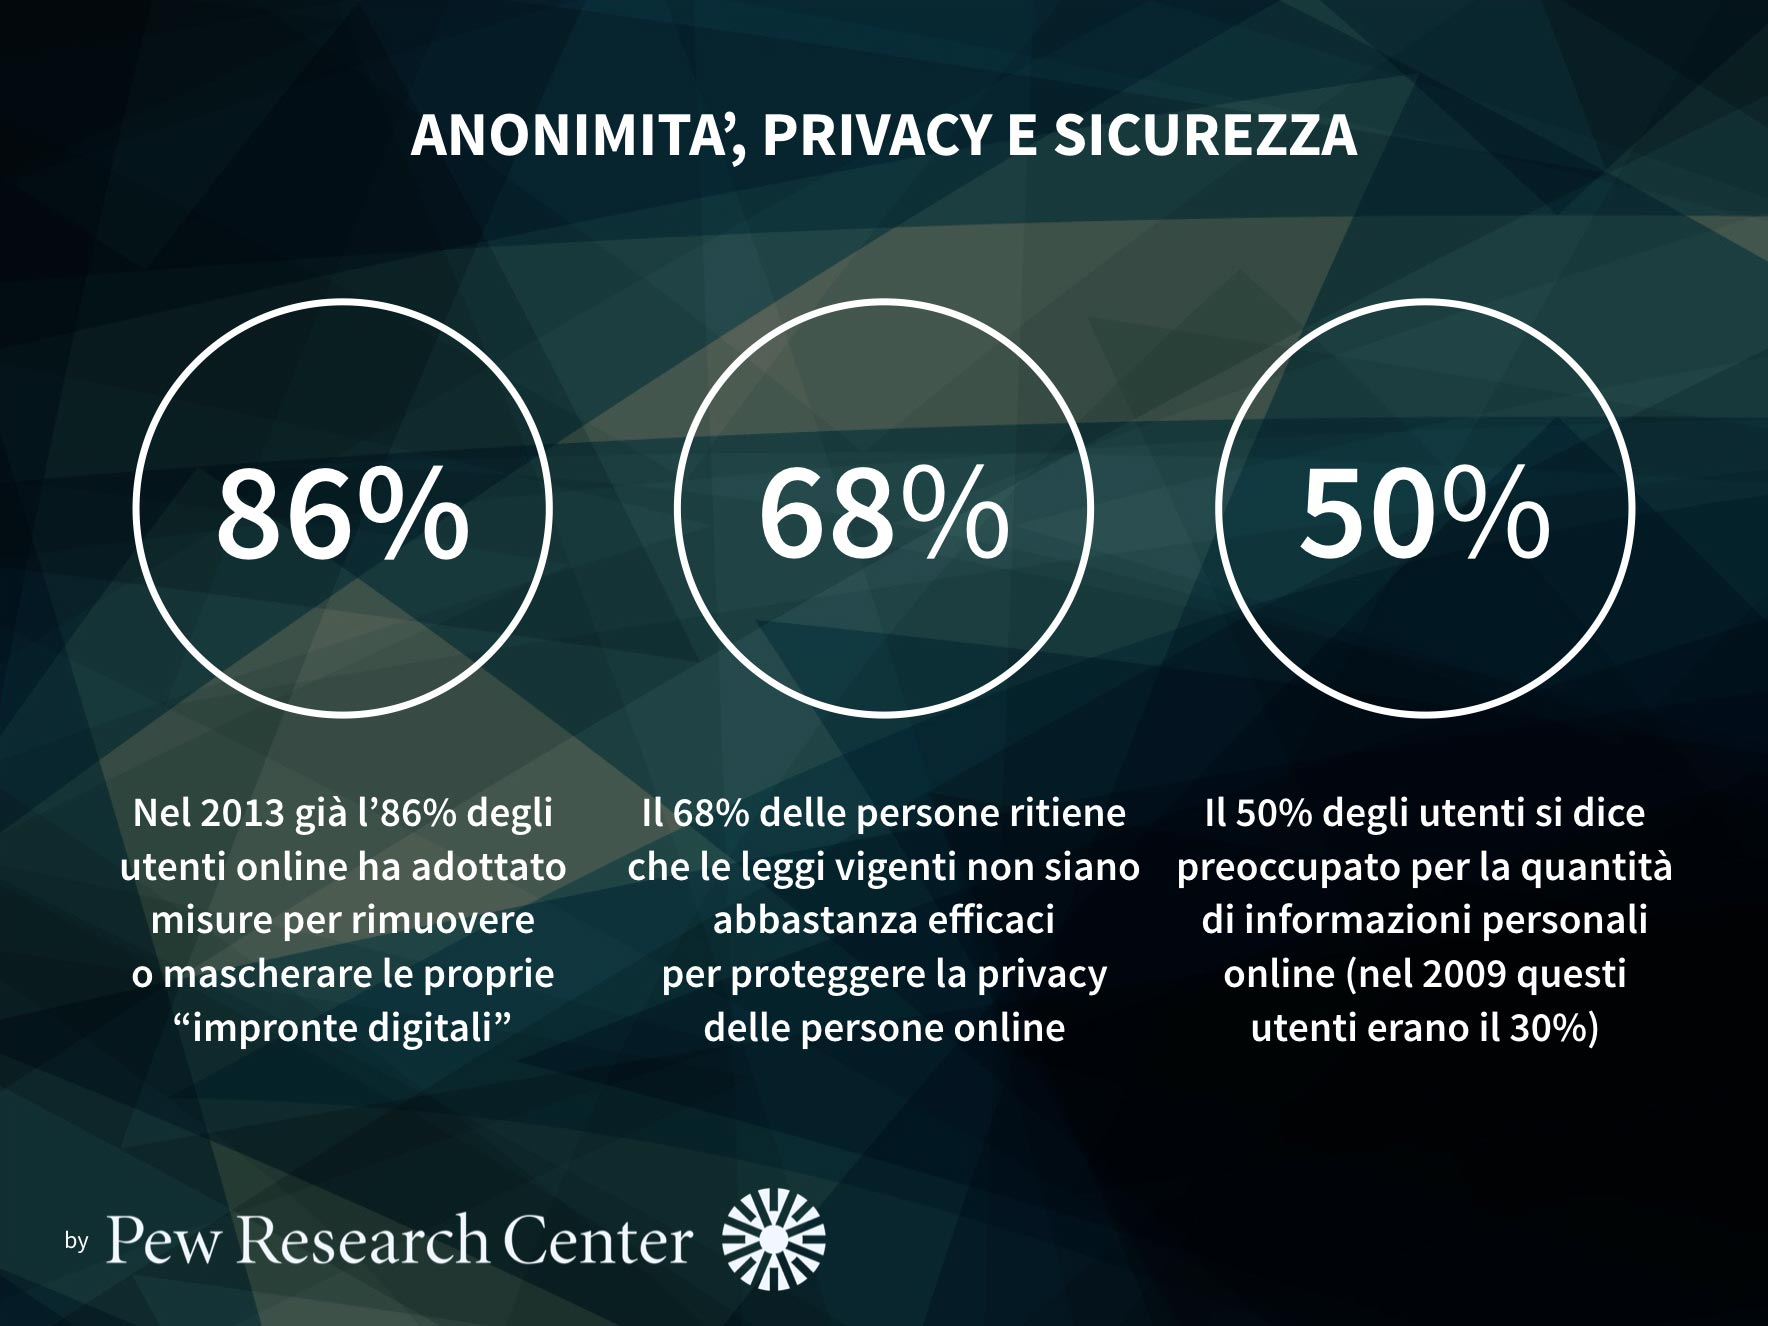 anonimità, privacy e sicurezza